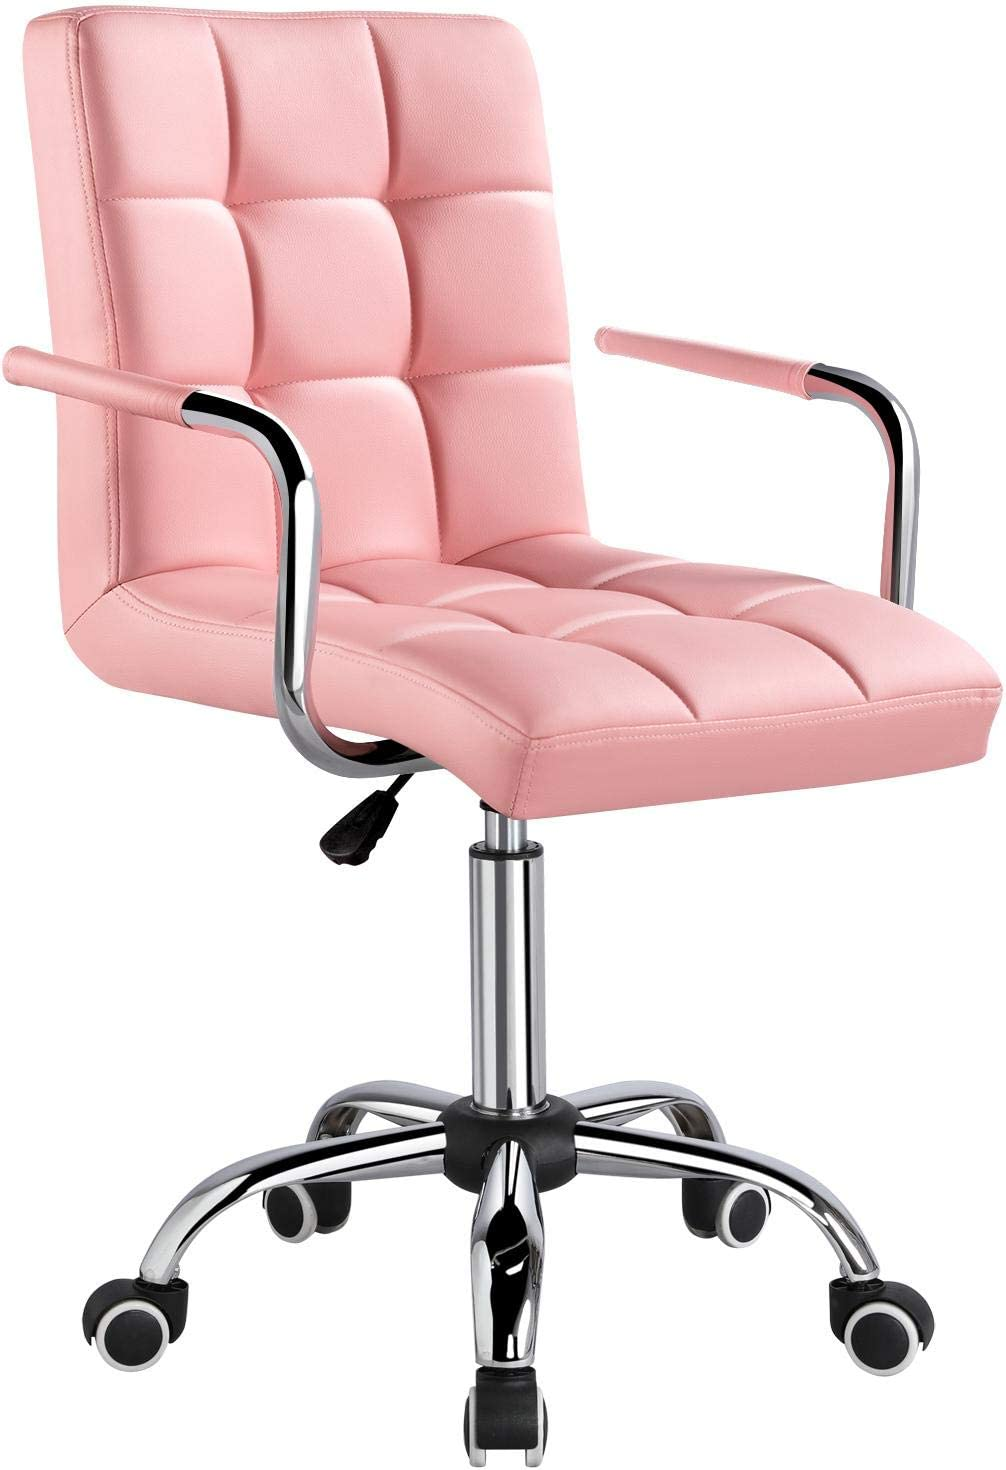 YAHEETECH Desk Chairs with Wheels/Armrests Modern PU Leather Office Chair Height Adjustable Home Computer Executive Chair on Wheels 360° Swivel - Pink